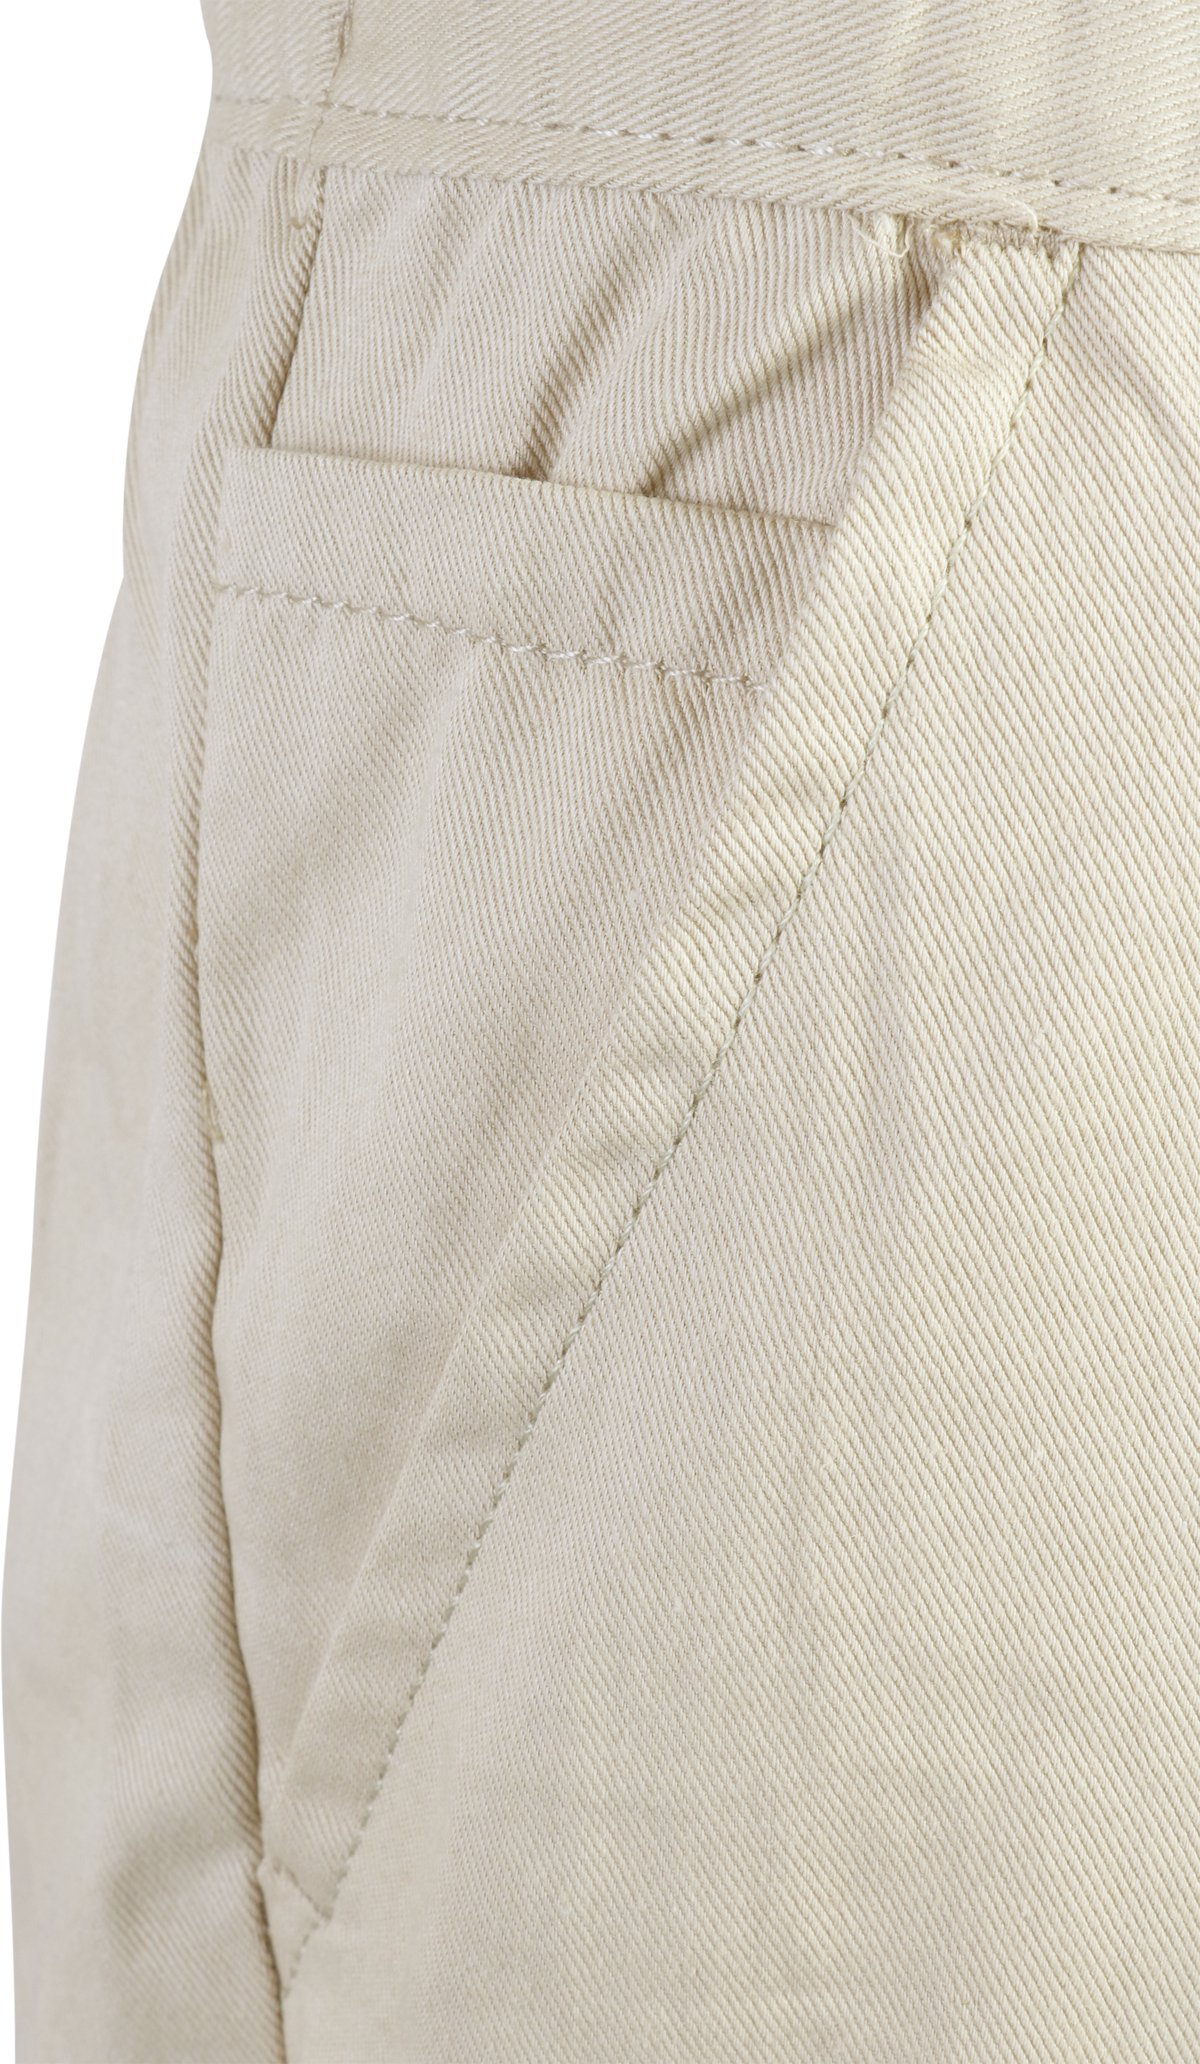 Beverly Hills Polo Club Boys School Uniform 2 Pack Twill Pull-On Jogger Pant with Adjustable Waist, Khaki, 14' by Beverly Hills Polo Club (Image #3)